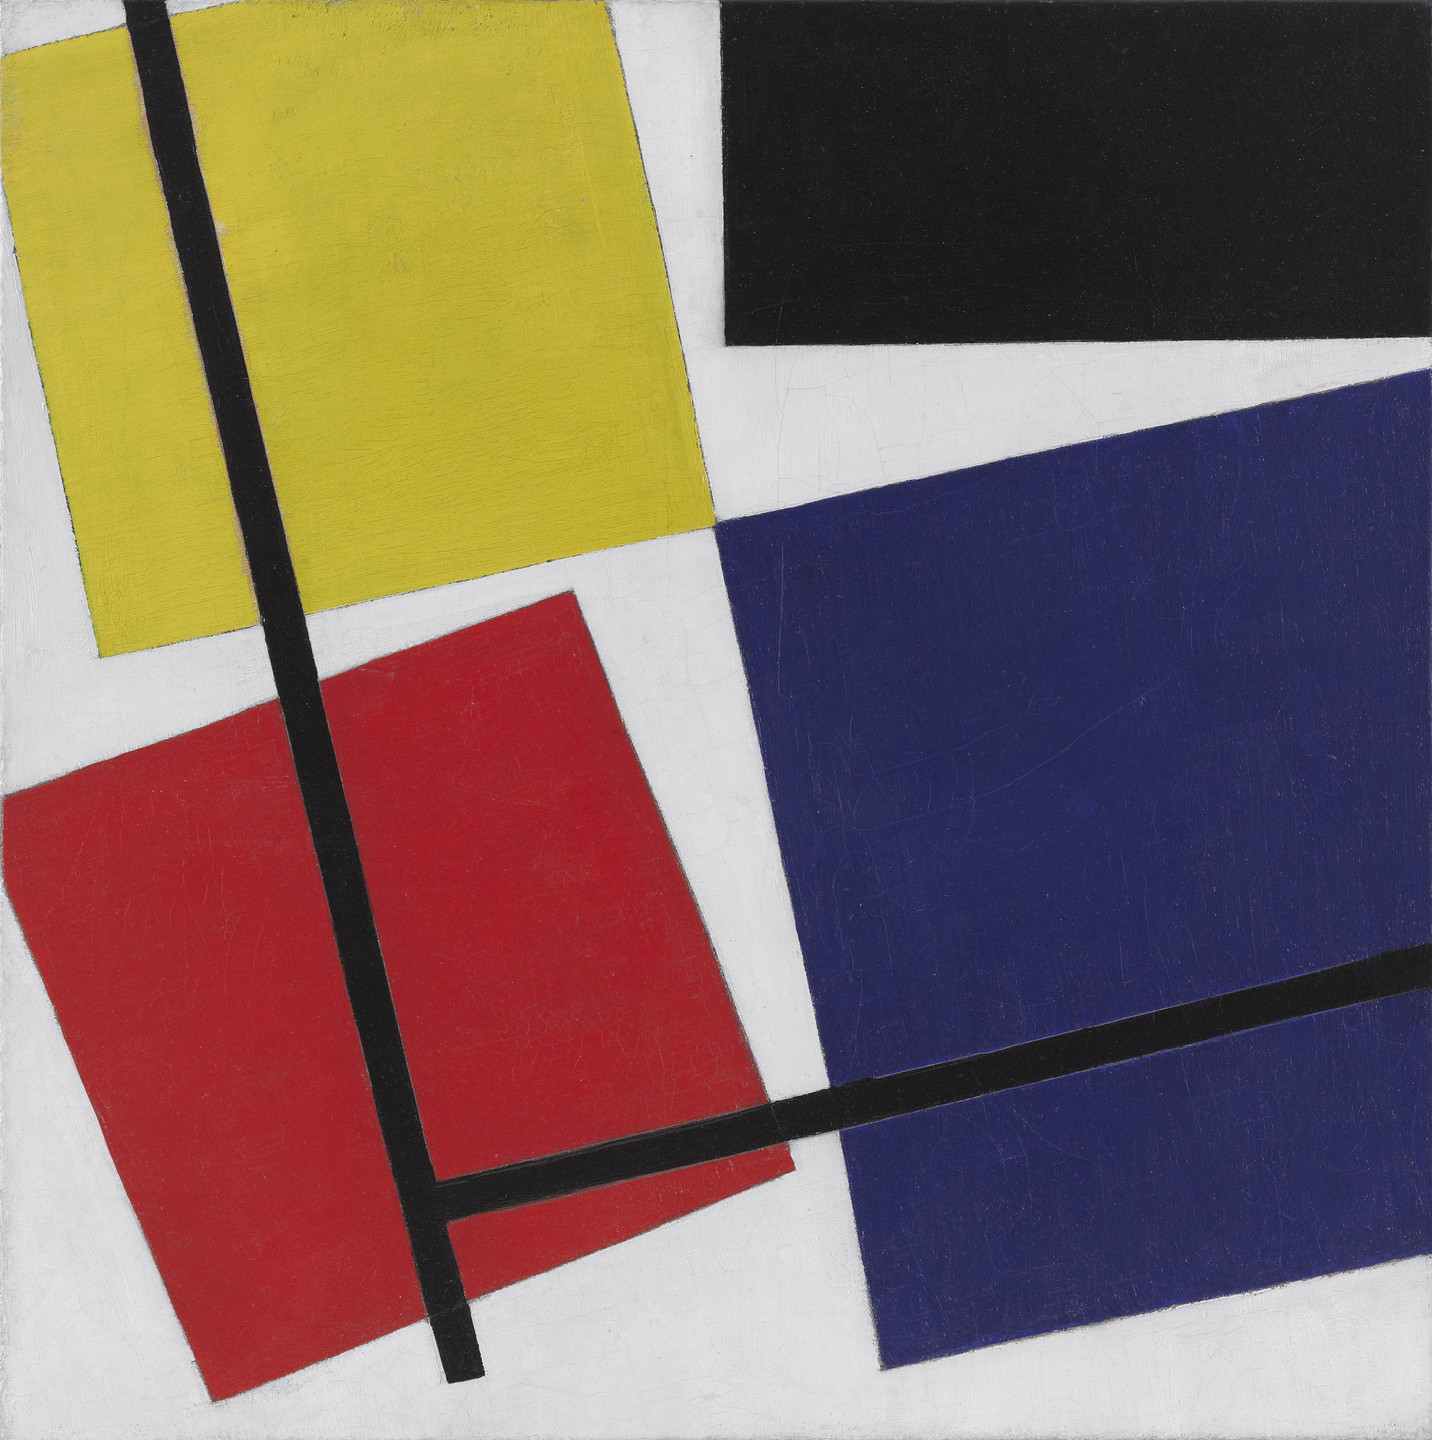 Theo van Doesburg. Simultaneous Counter-Composition. 1929-30